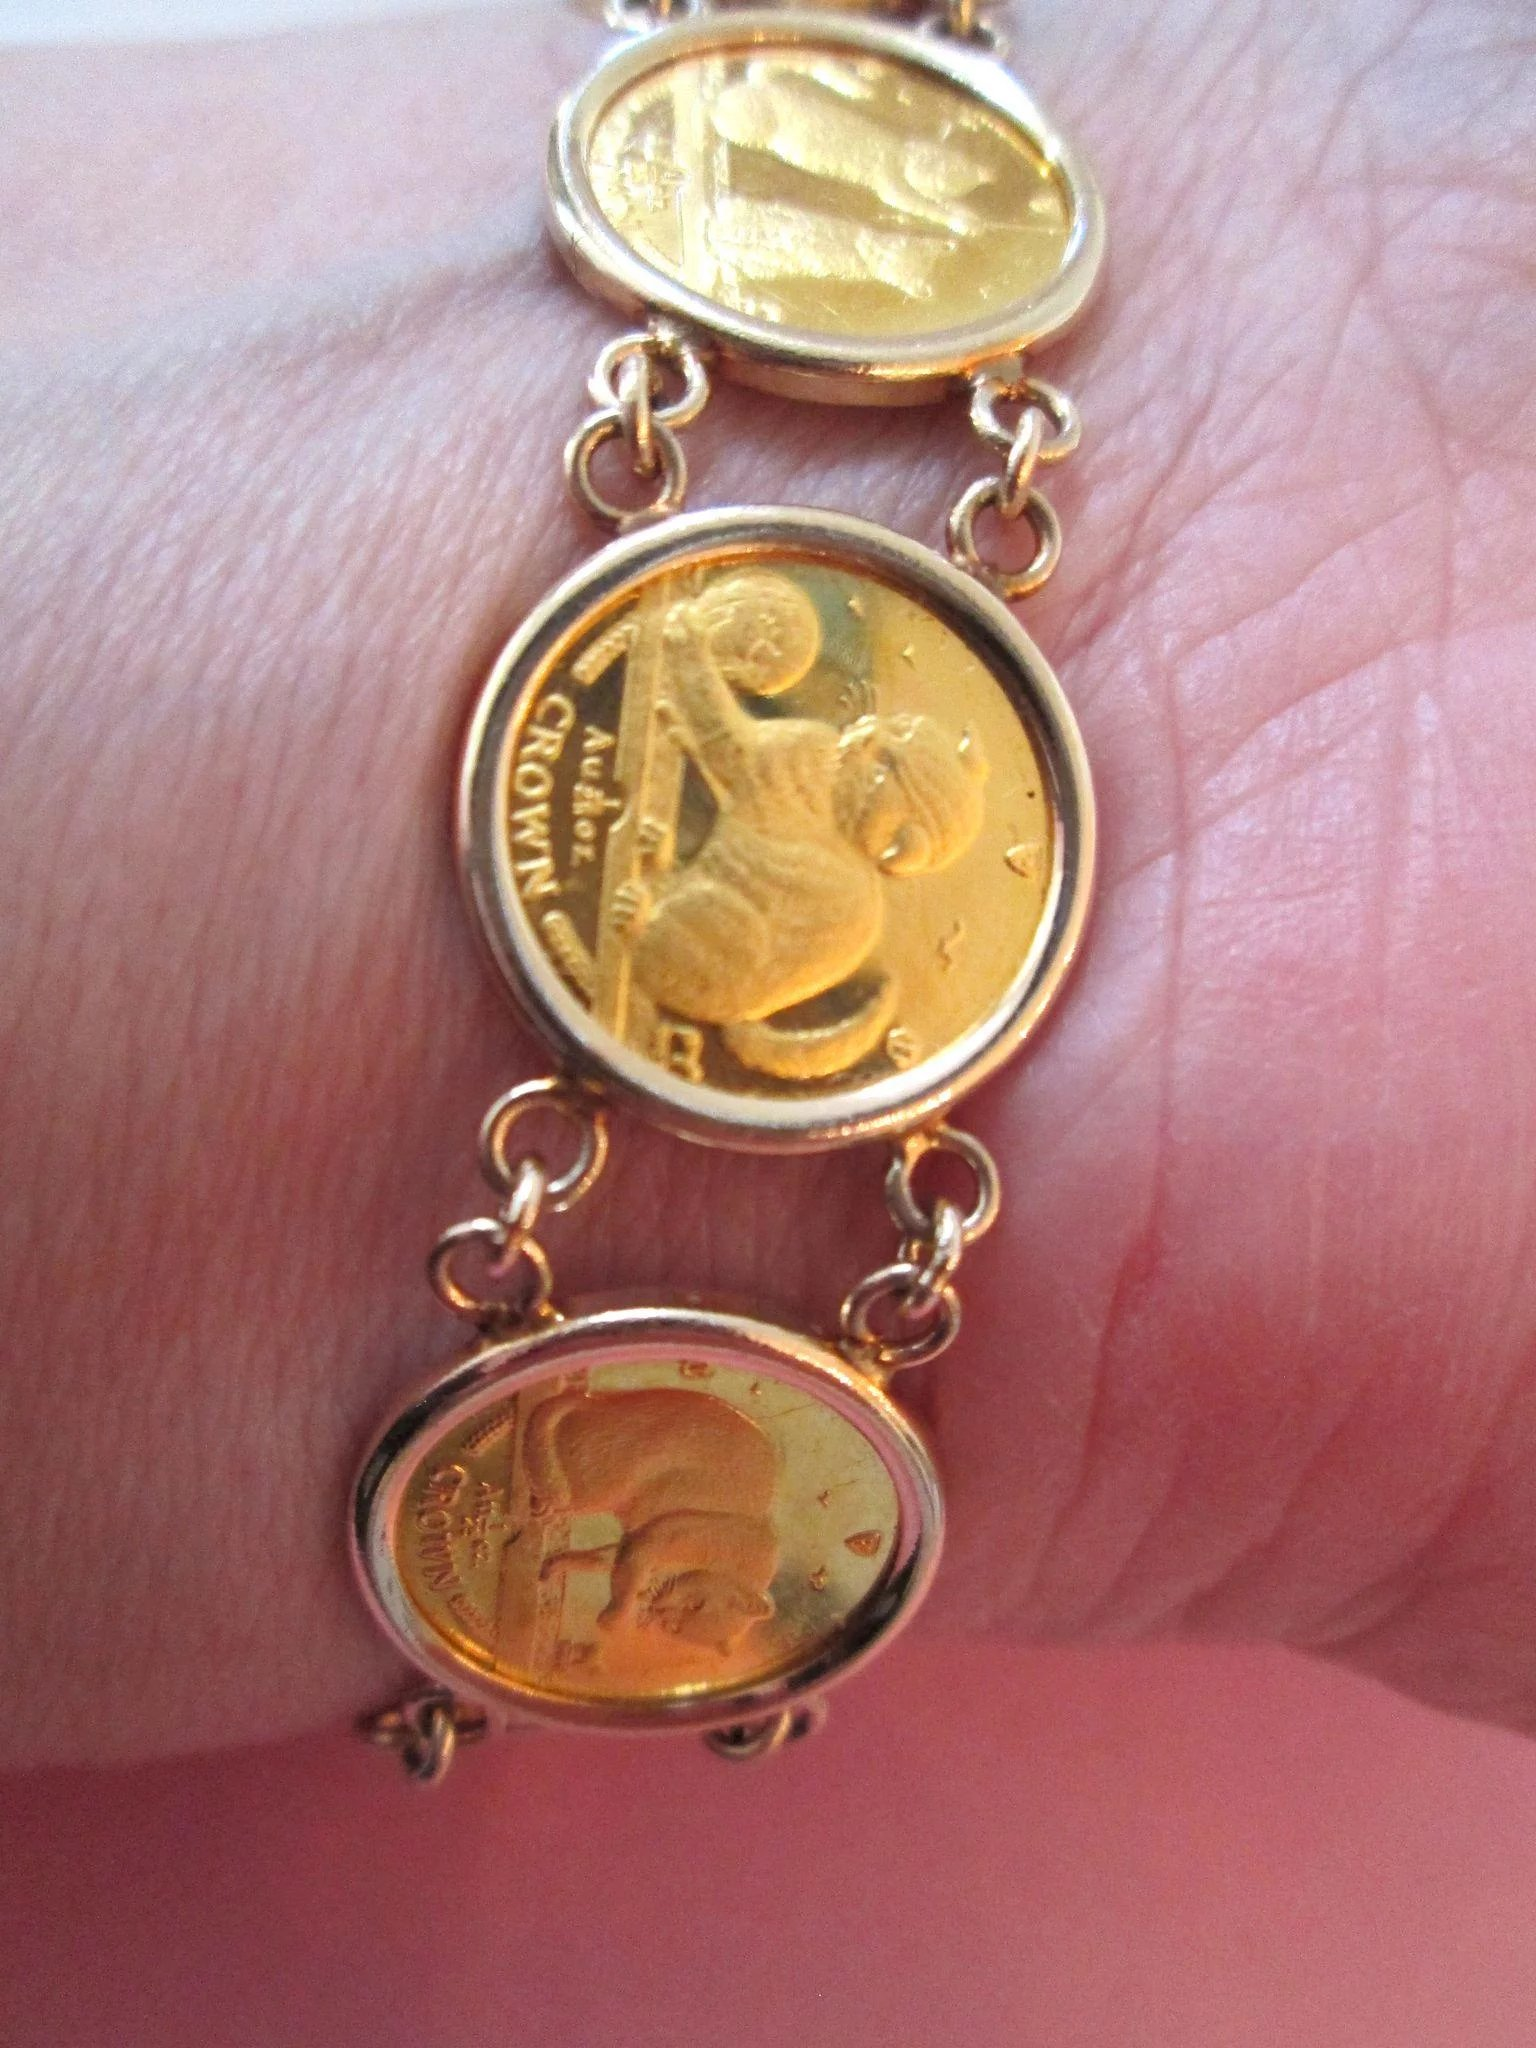 24k Gold Queen Elizabeth Isle Of Man Cat Coin Bracelet 14k